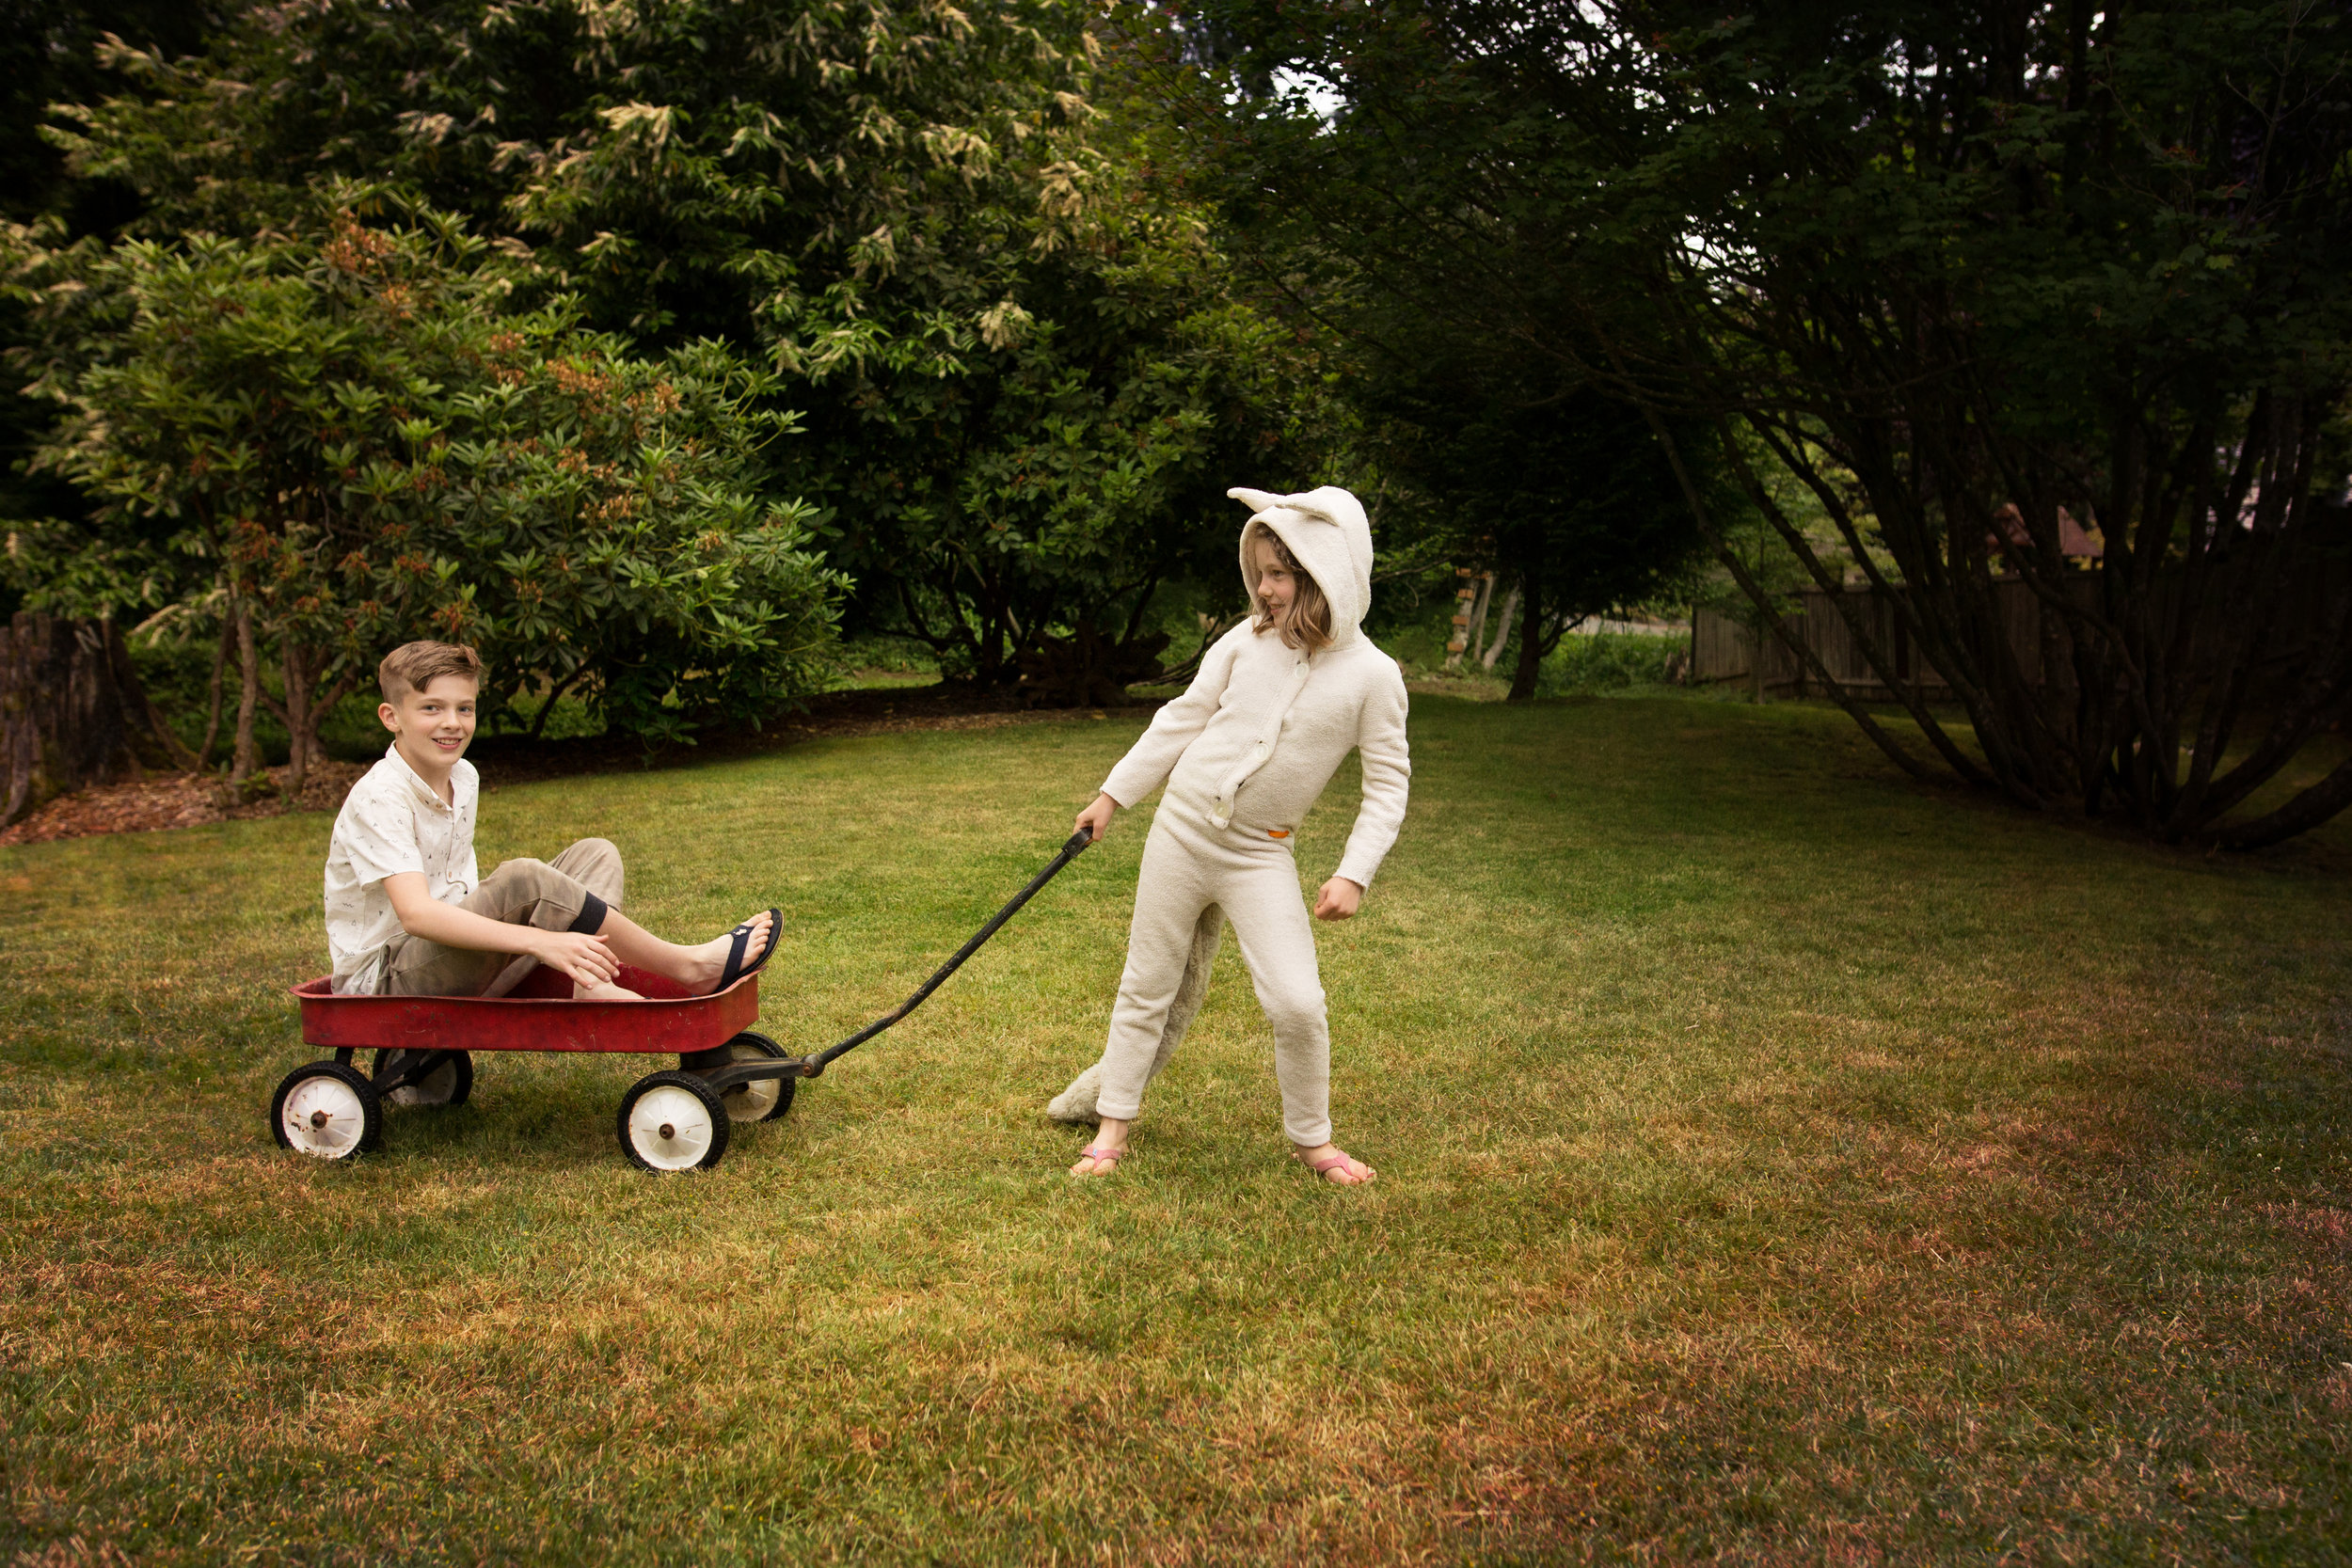 young girl in wild things costume pulling teenaged boy in wagon in green yard